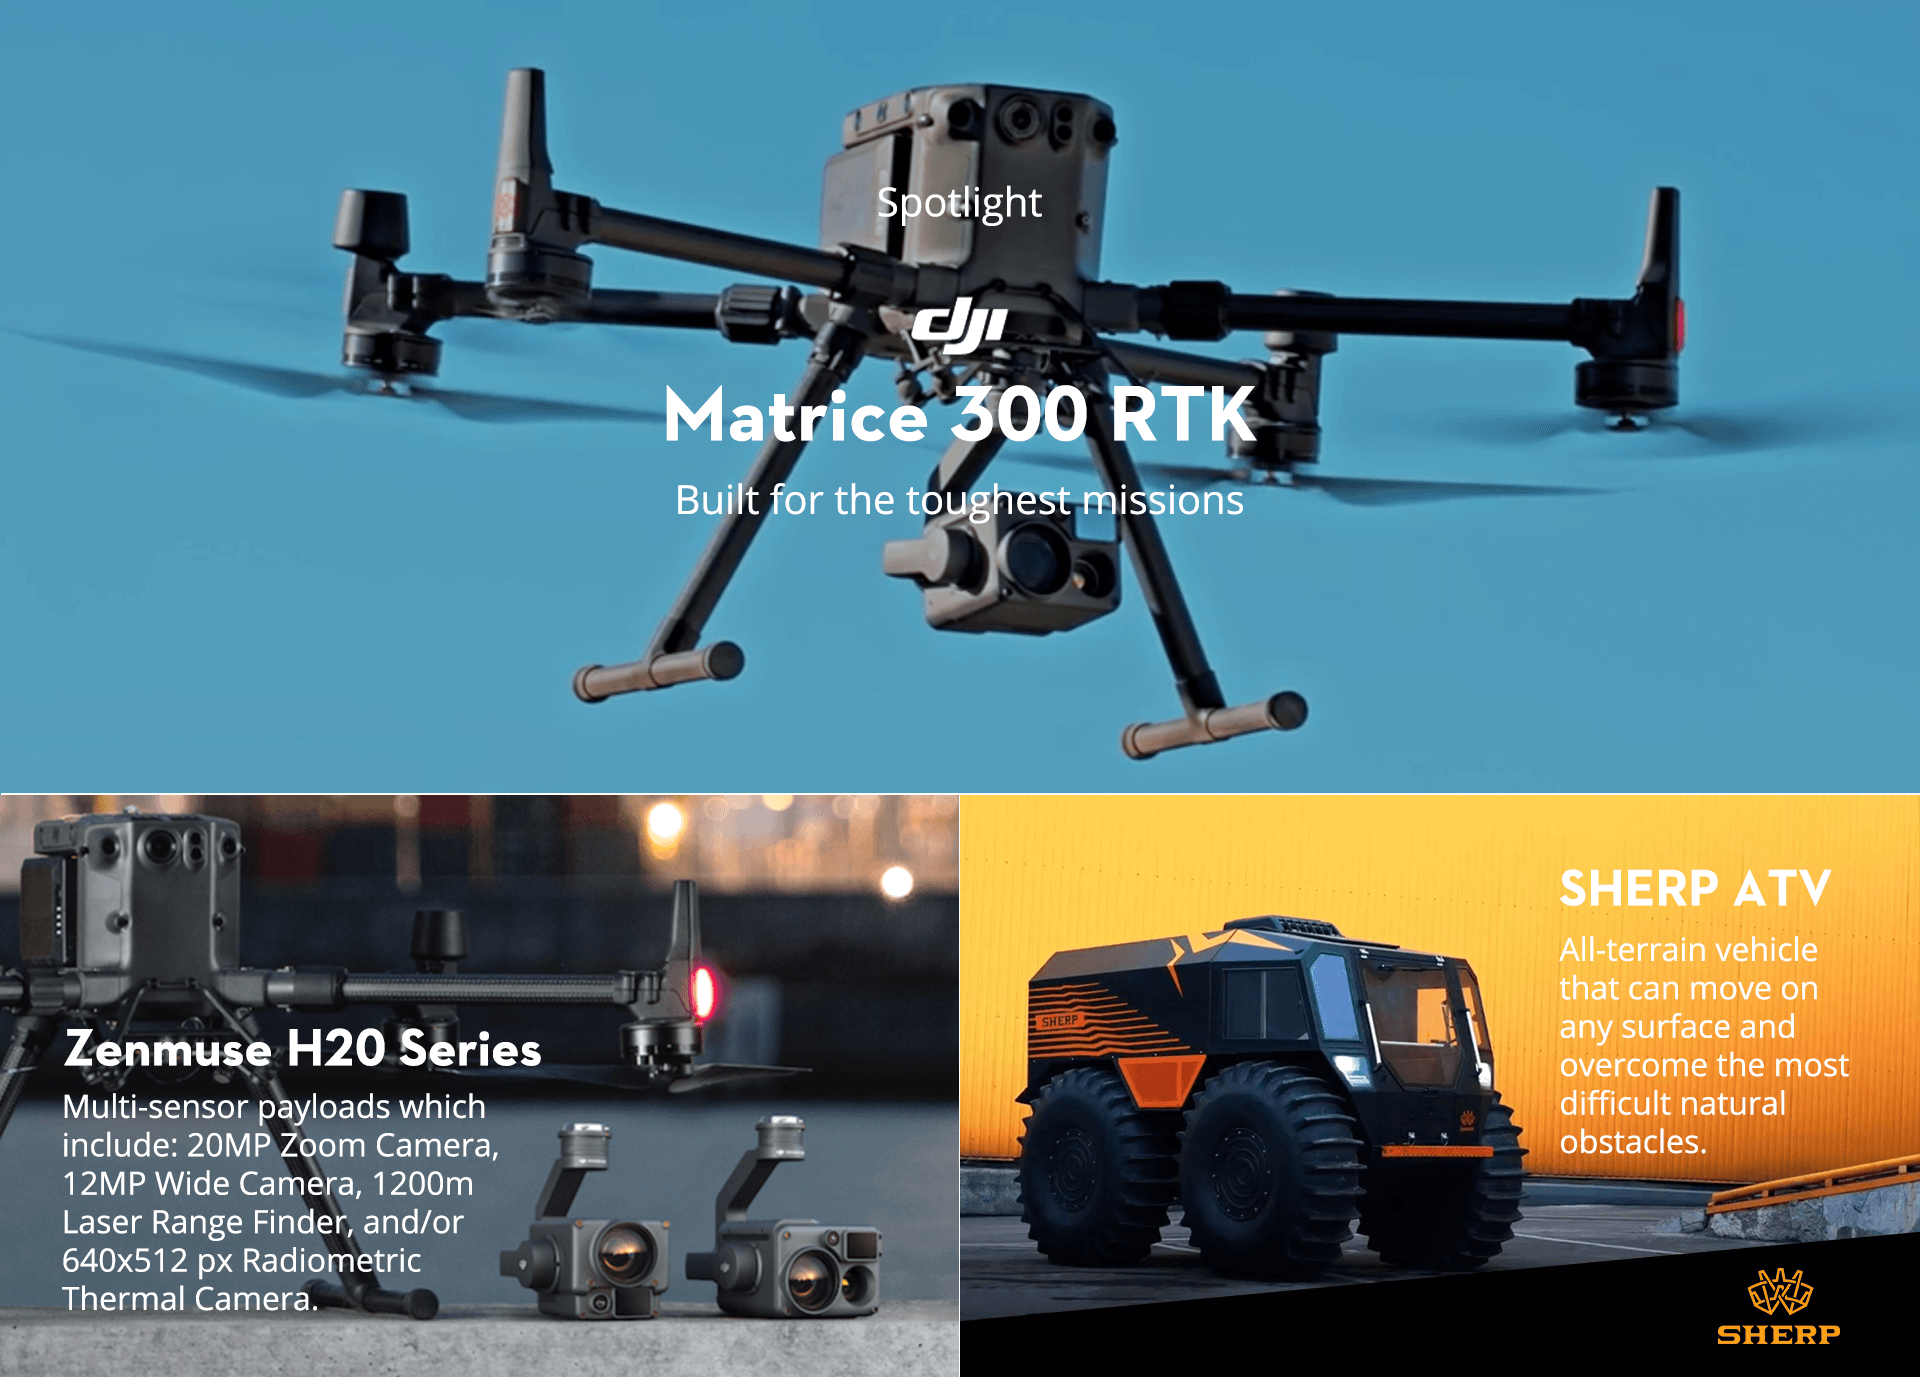 ATVs Drone Product Overview Infographic